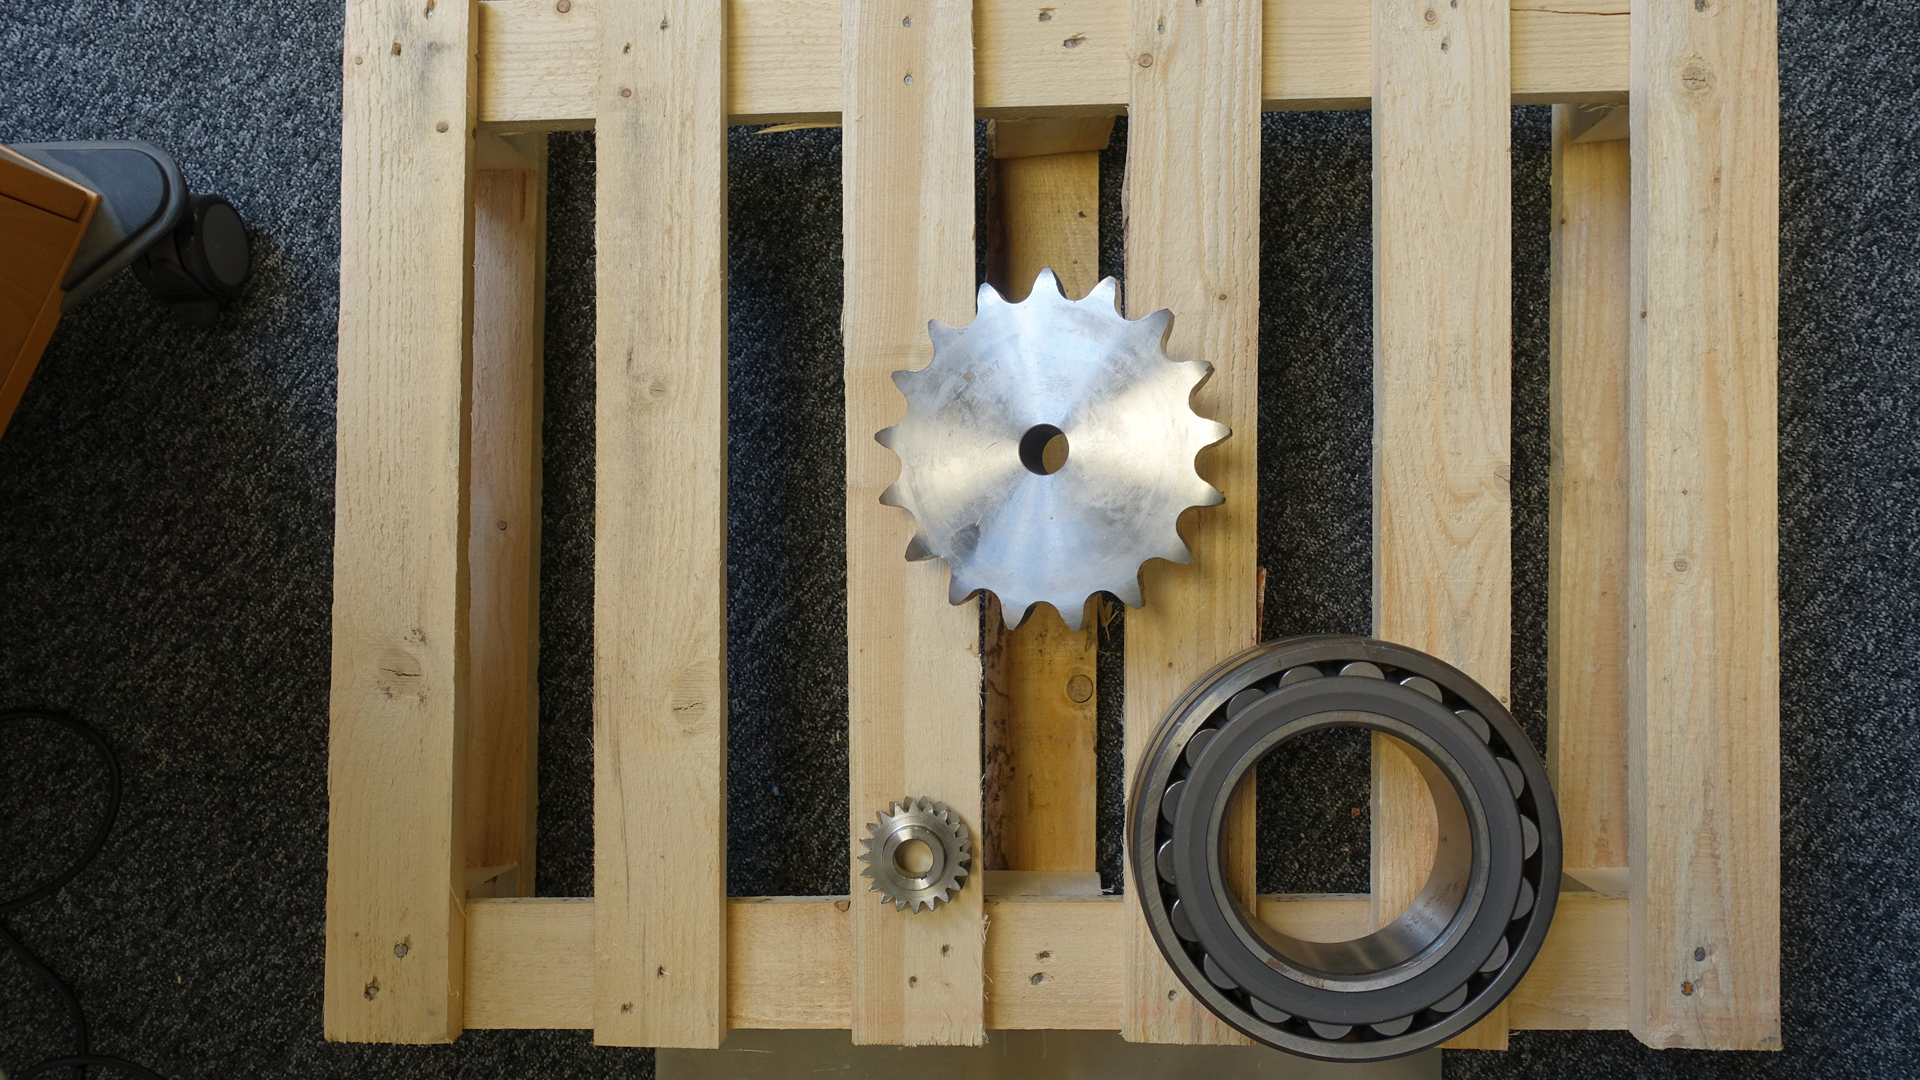 Stainless-steel cogwheels of various sizes and heights